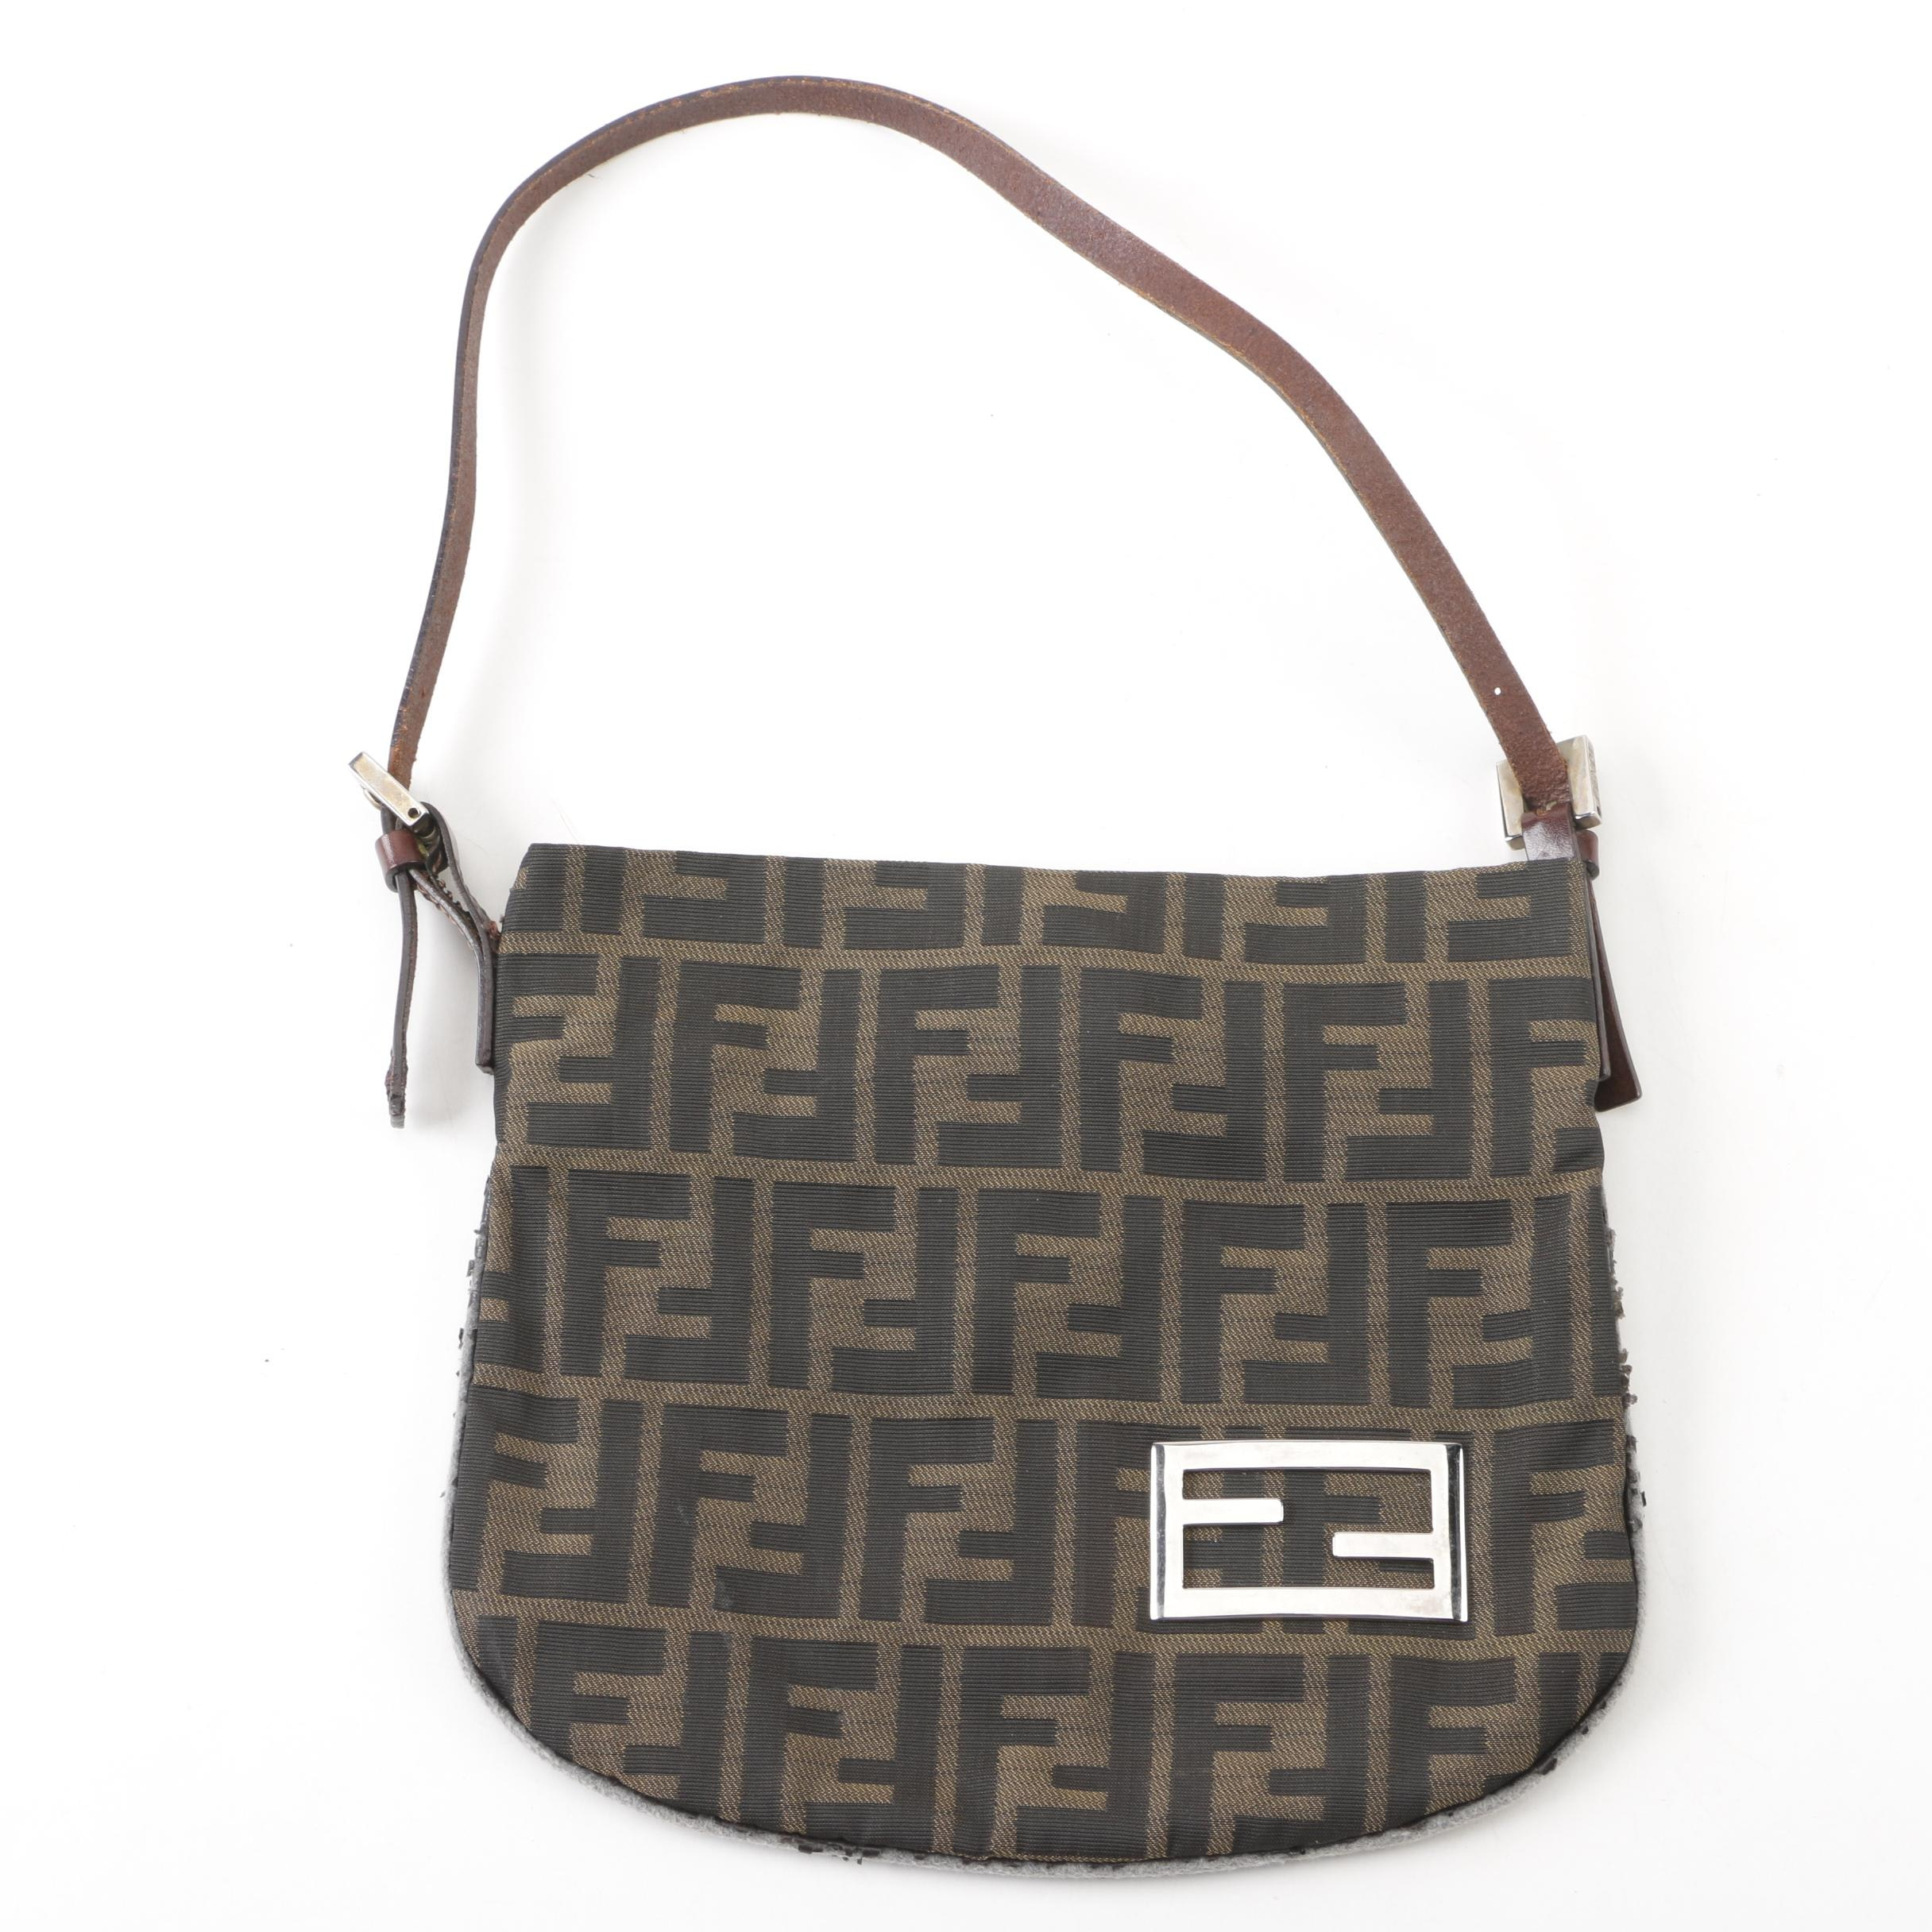 Fendi Zucca Monogram Canvas and Leather Handbag, Made in Italy